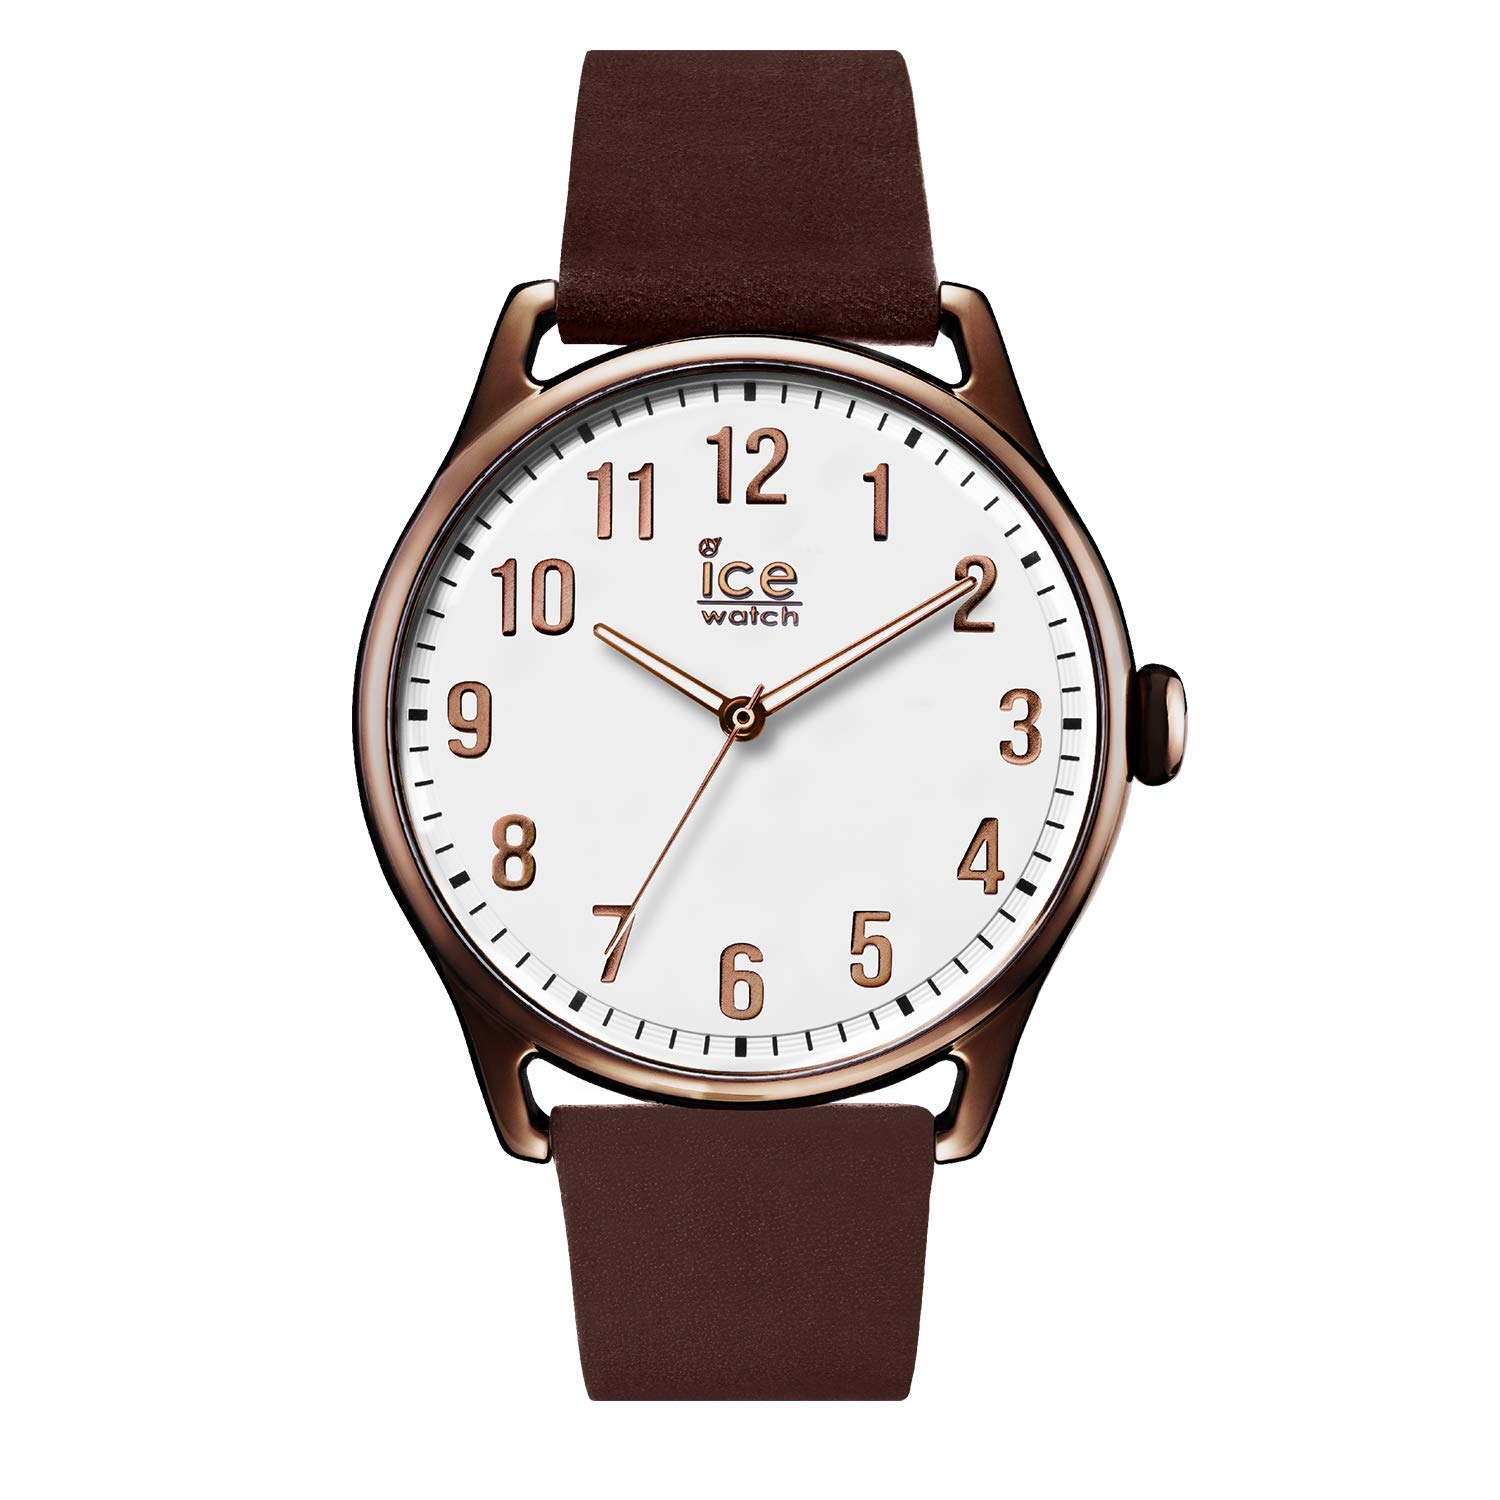 Ice-Watch - Ice Time Brown White - Reloj Marrón para Hombre con Correa de Cuero - 013047 (Large)